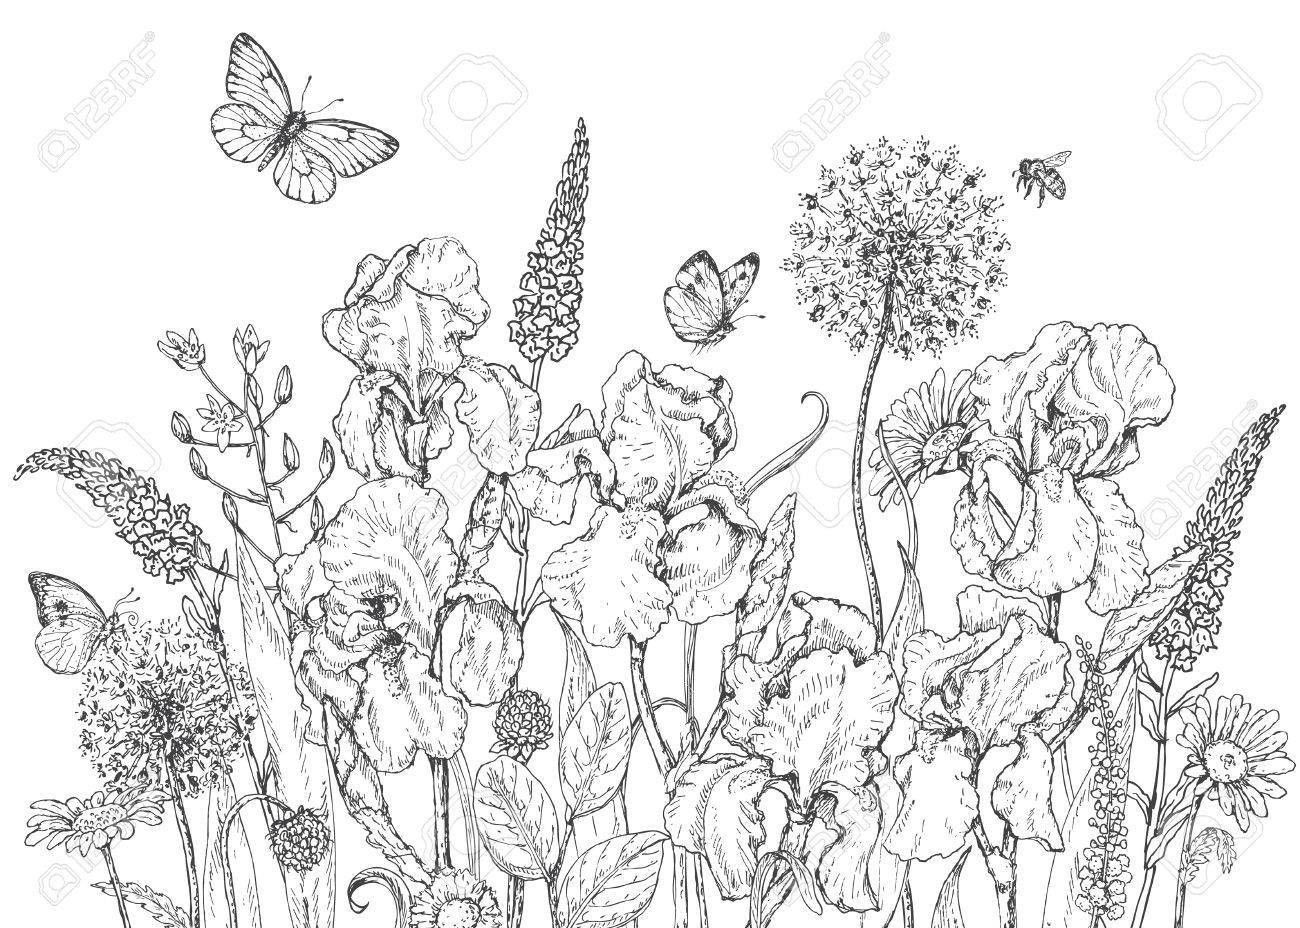 Best Hand Drawn Line Illustration With Iris And Insects Picture